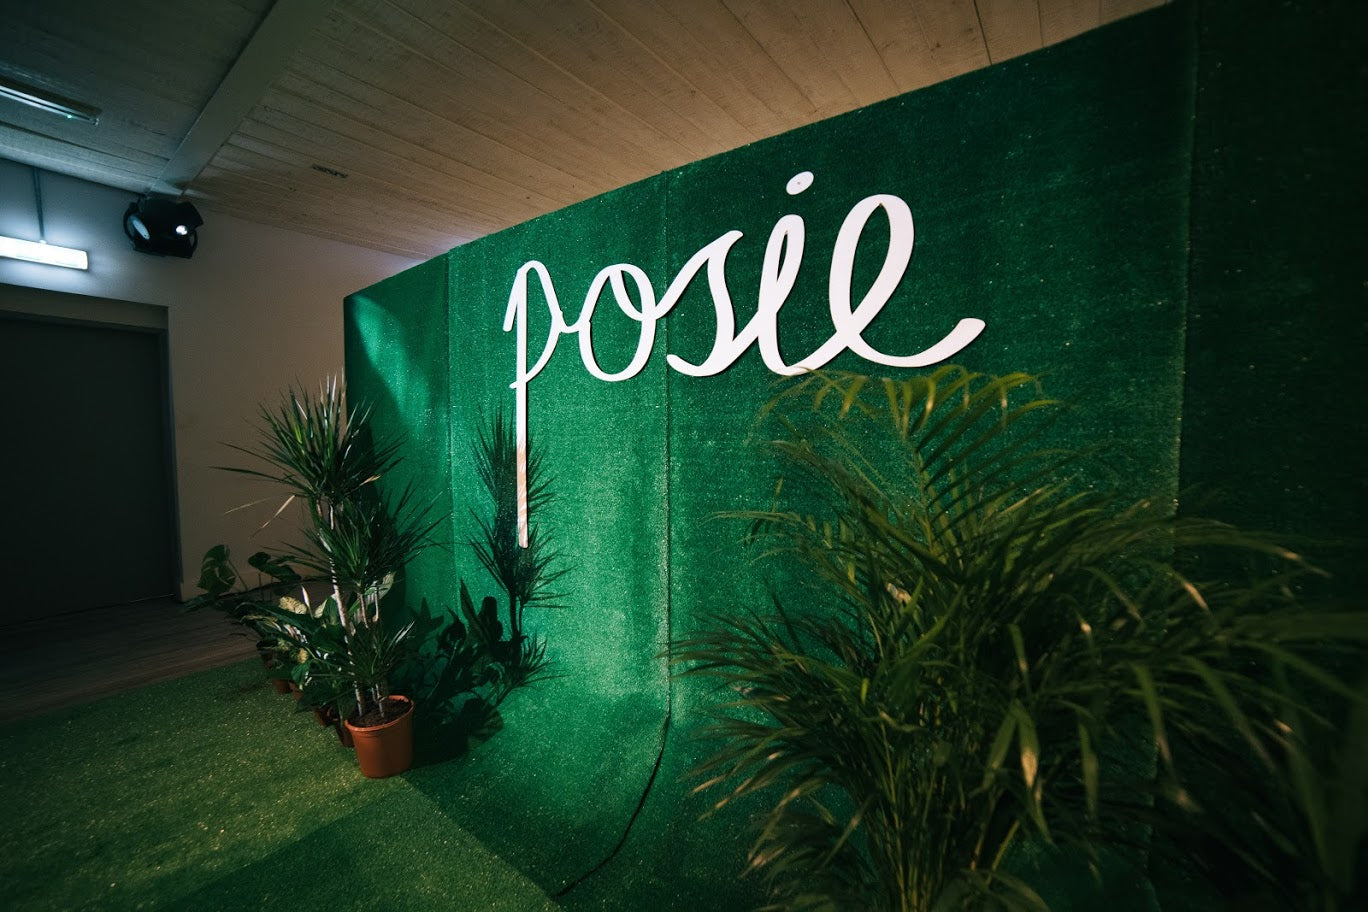 Posie launch backdrop